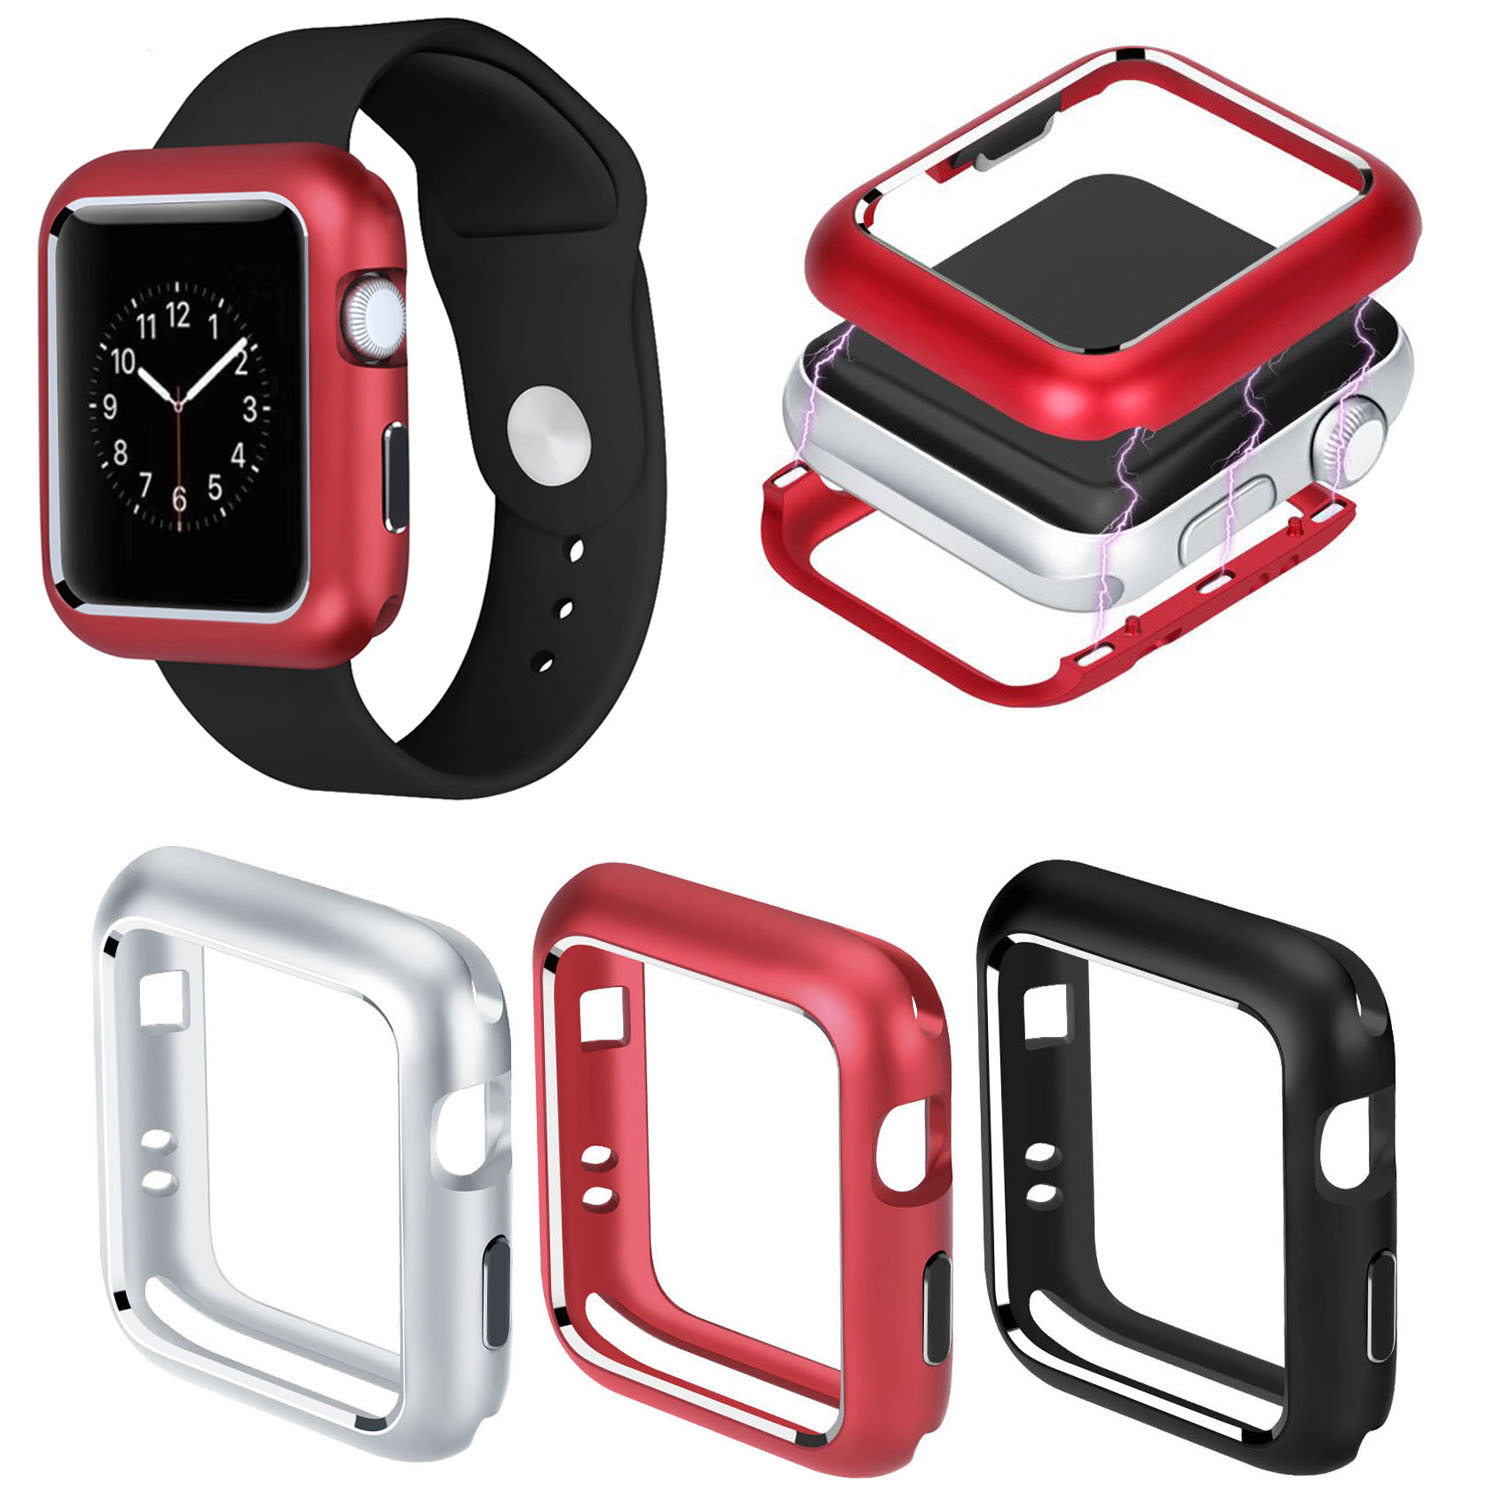 Aluminum Alloy Metal Cover for <font><b>Apple</b></font> <font><b>Watch</b></font> Case 40 44 mm <font><b>38</b></font> 42 mm Magnetic Full Protection Cover for iWatch Series 5 4 <font><b>3</b></font> 2 Case image